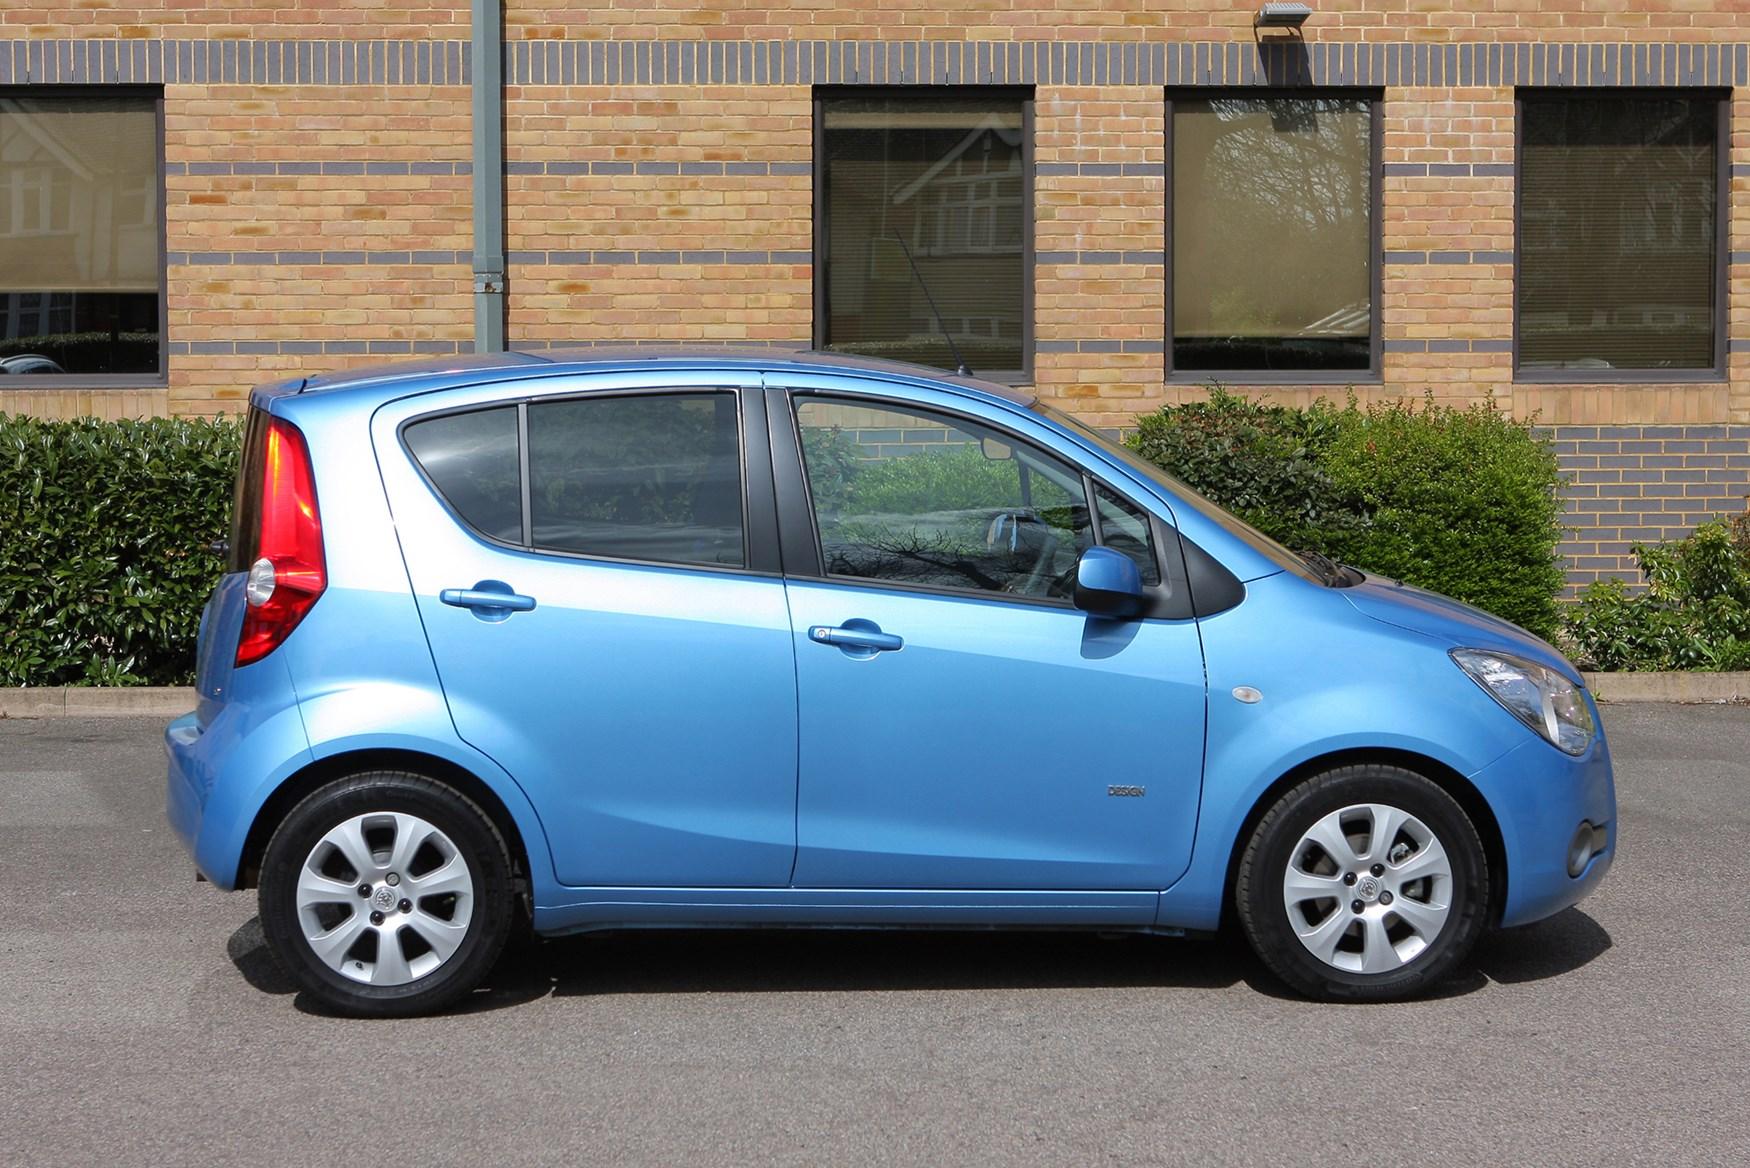 Vauxhall agila photo - 4